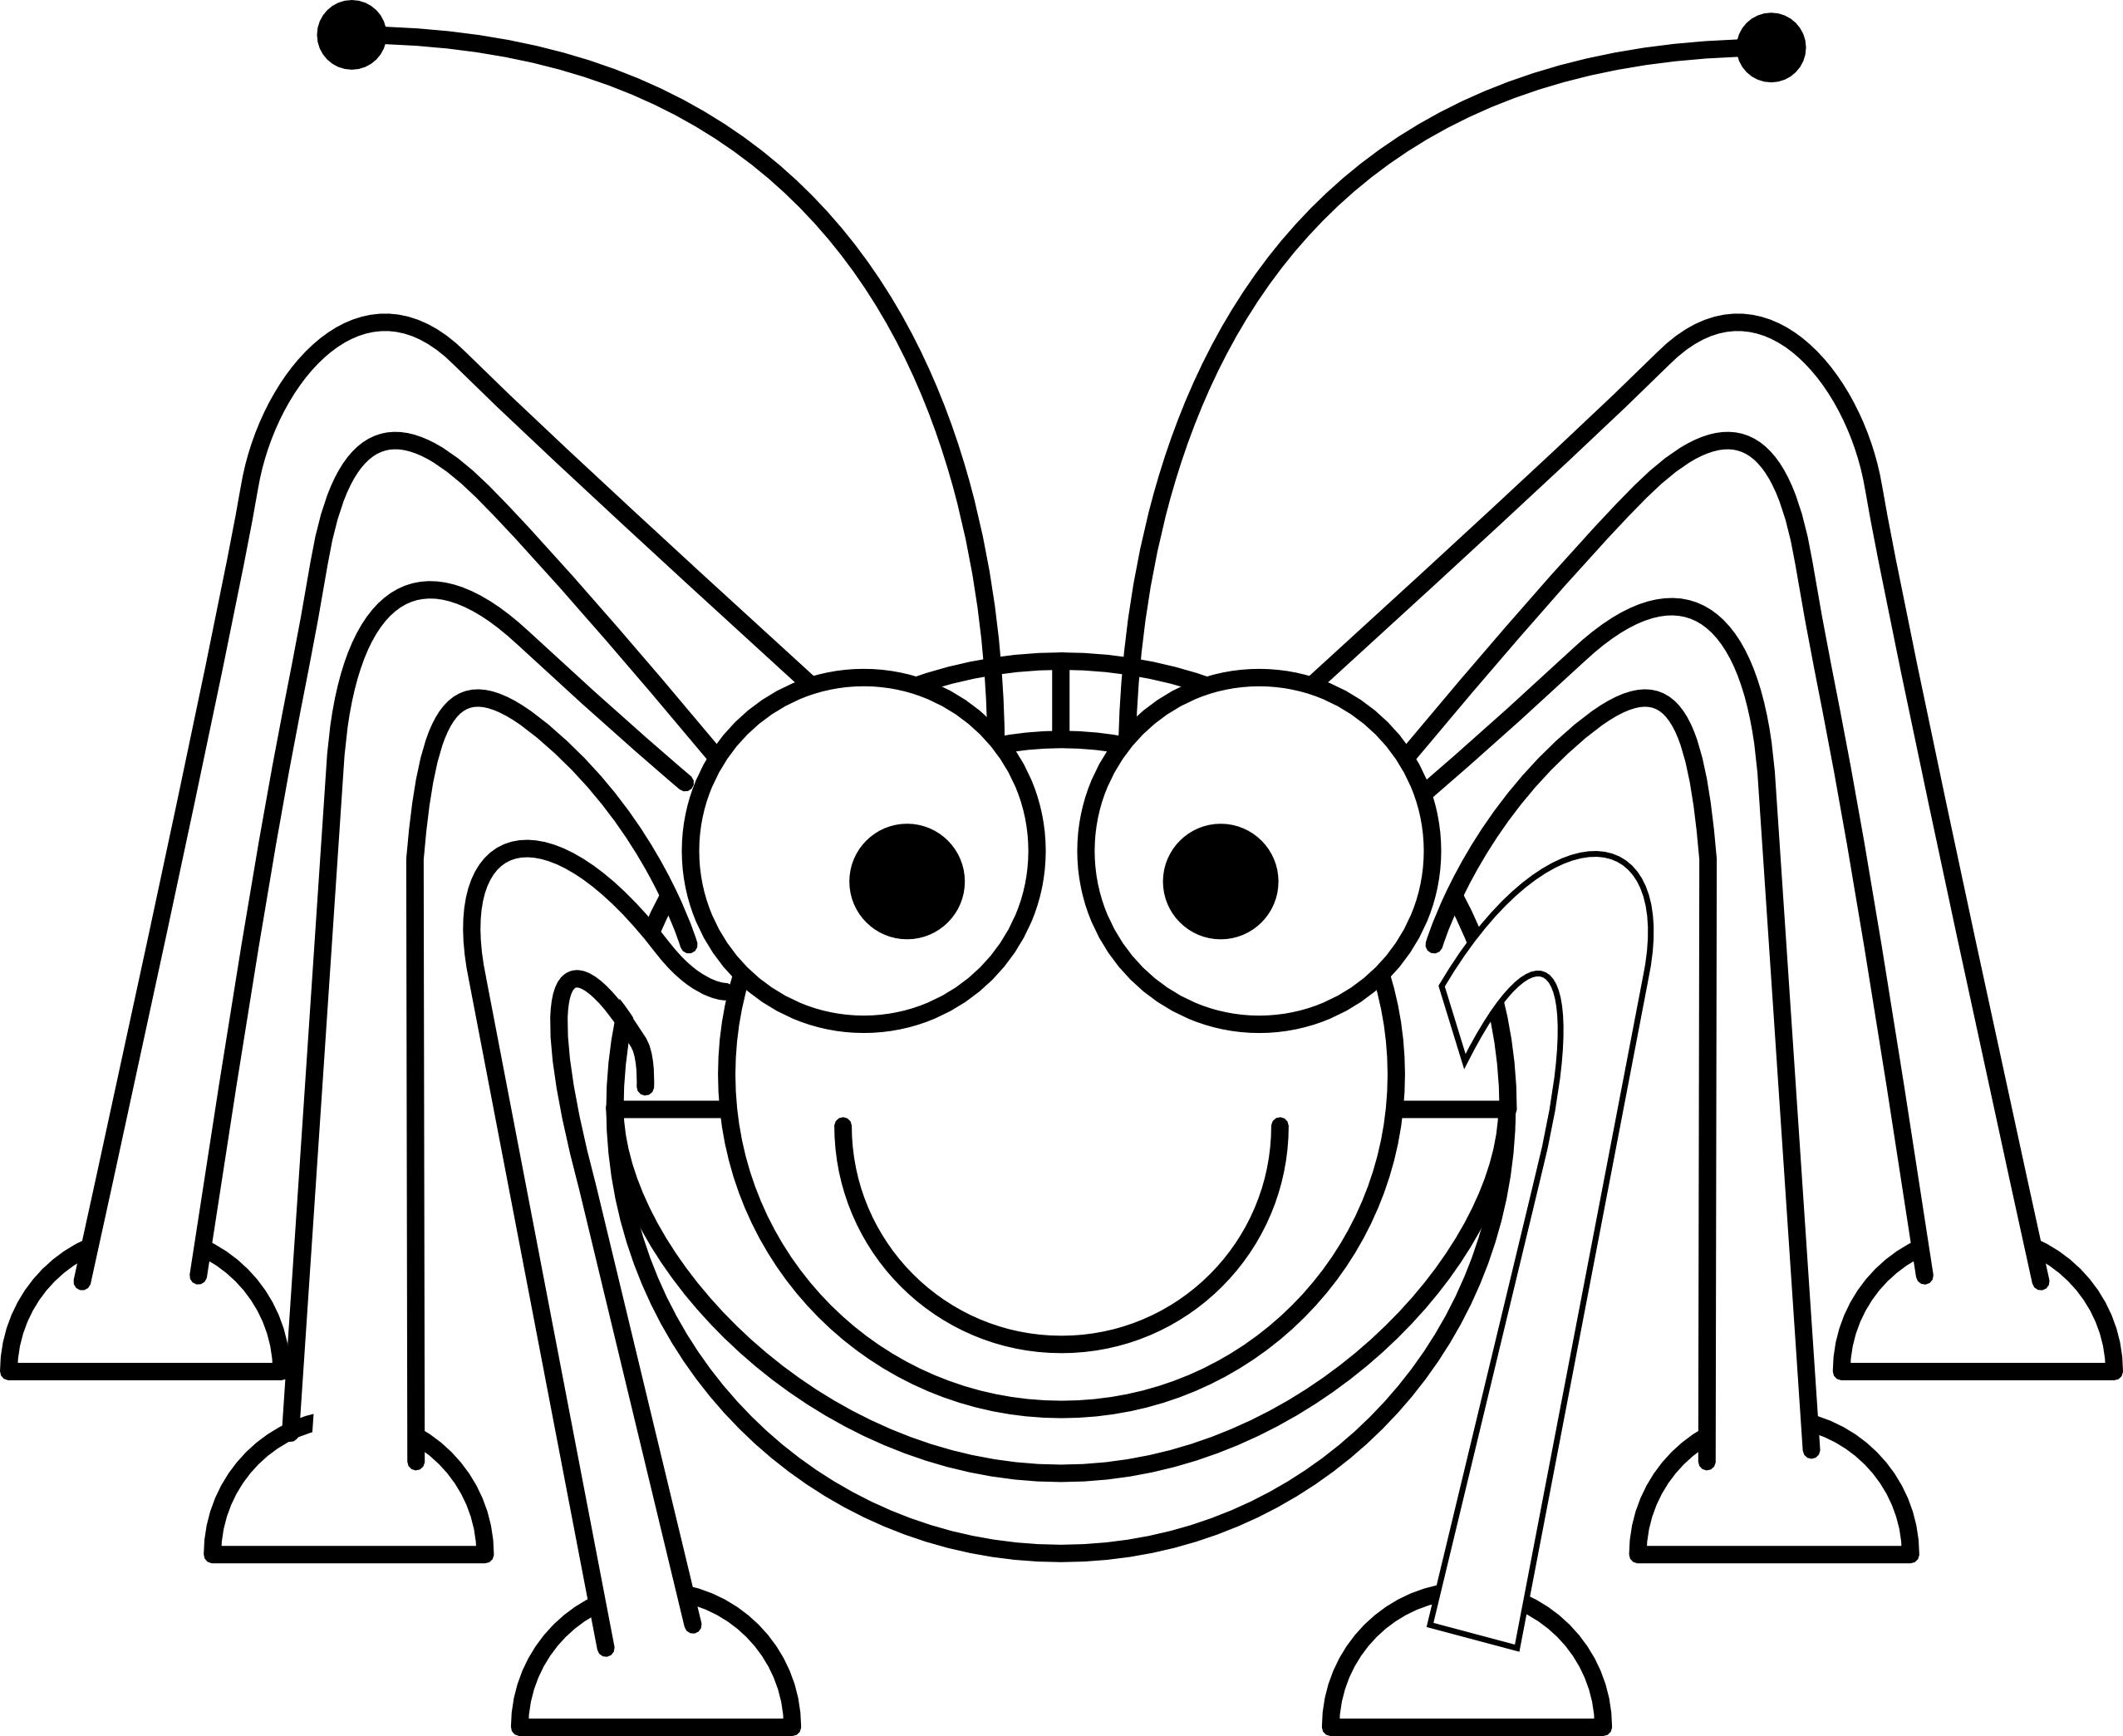 Grasshopper Clipart Black And White Clipart Panda Free Clipart Insect Coloring Pages Nouns And Adjectives Free Clip Art